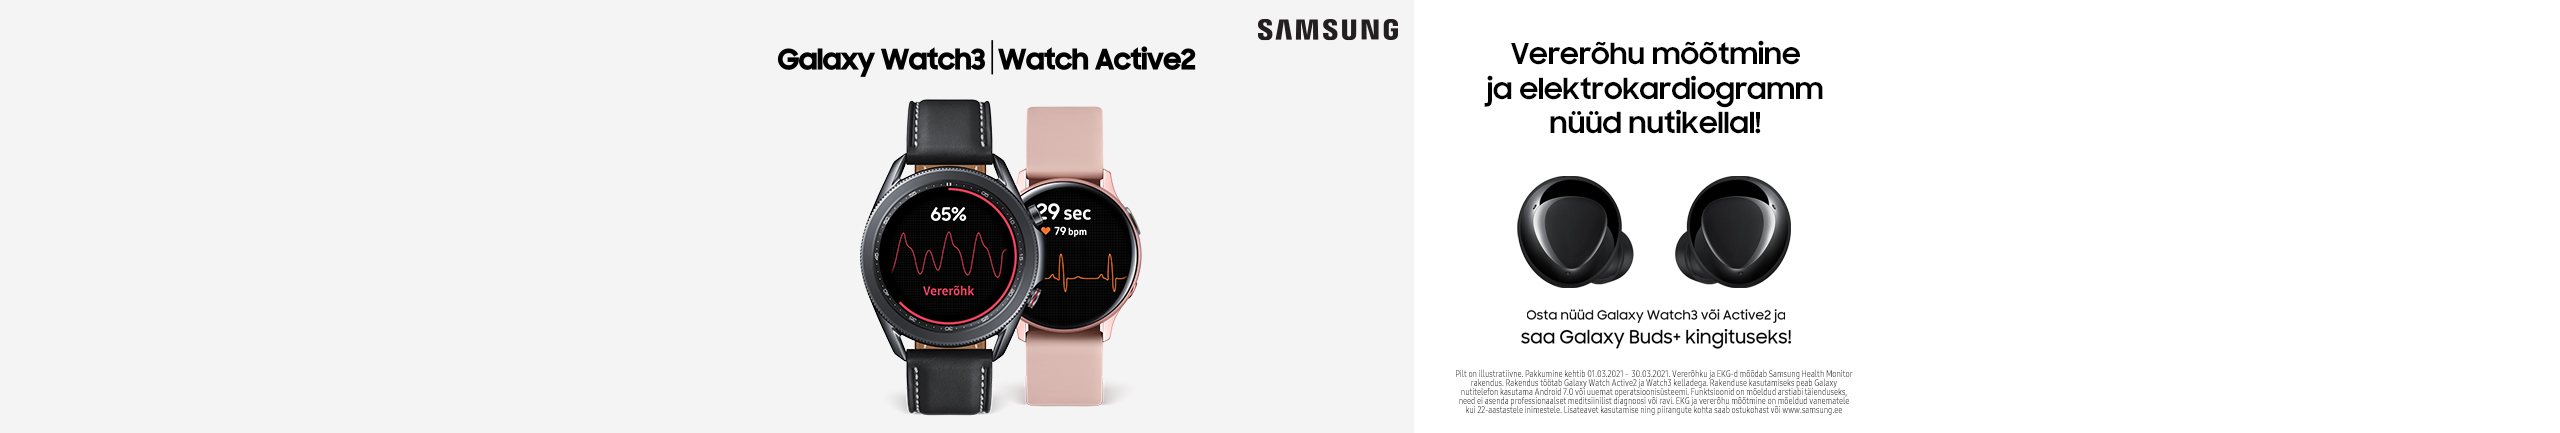 Buy Galaxy Watch 3 or Active 2 and get Galaxy Buds + as a gift!